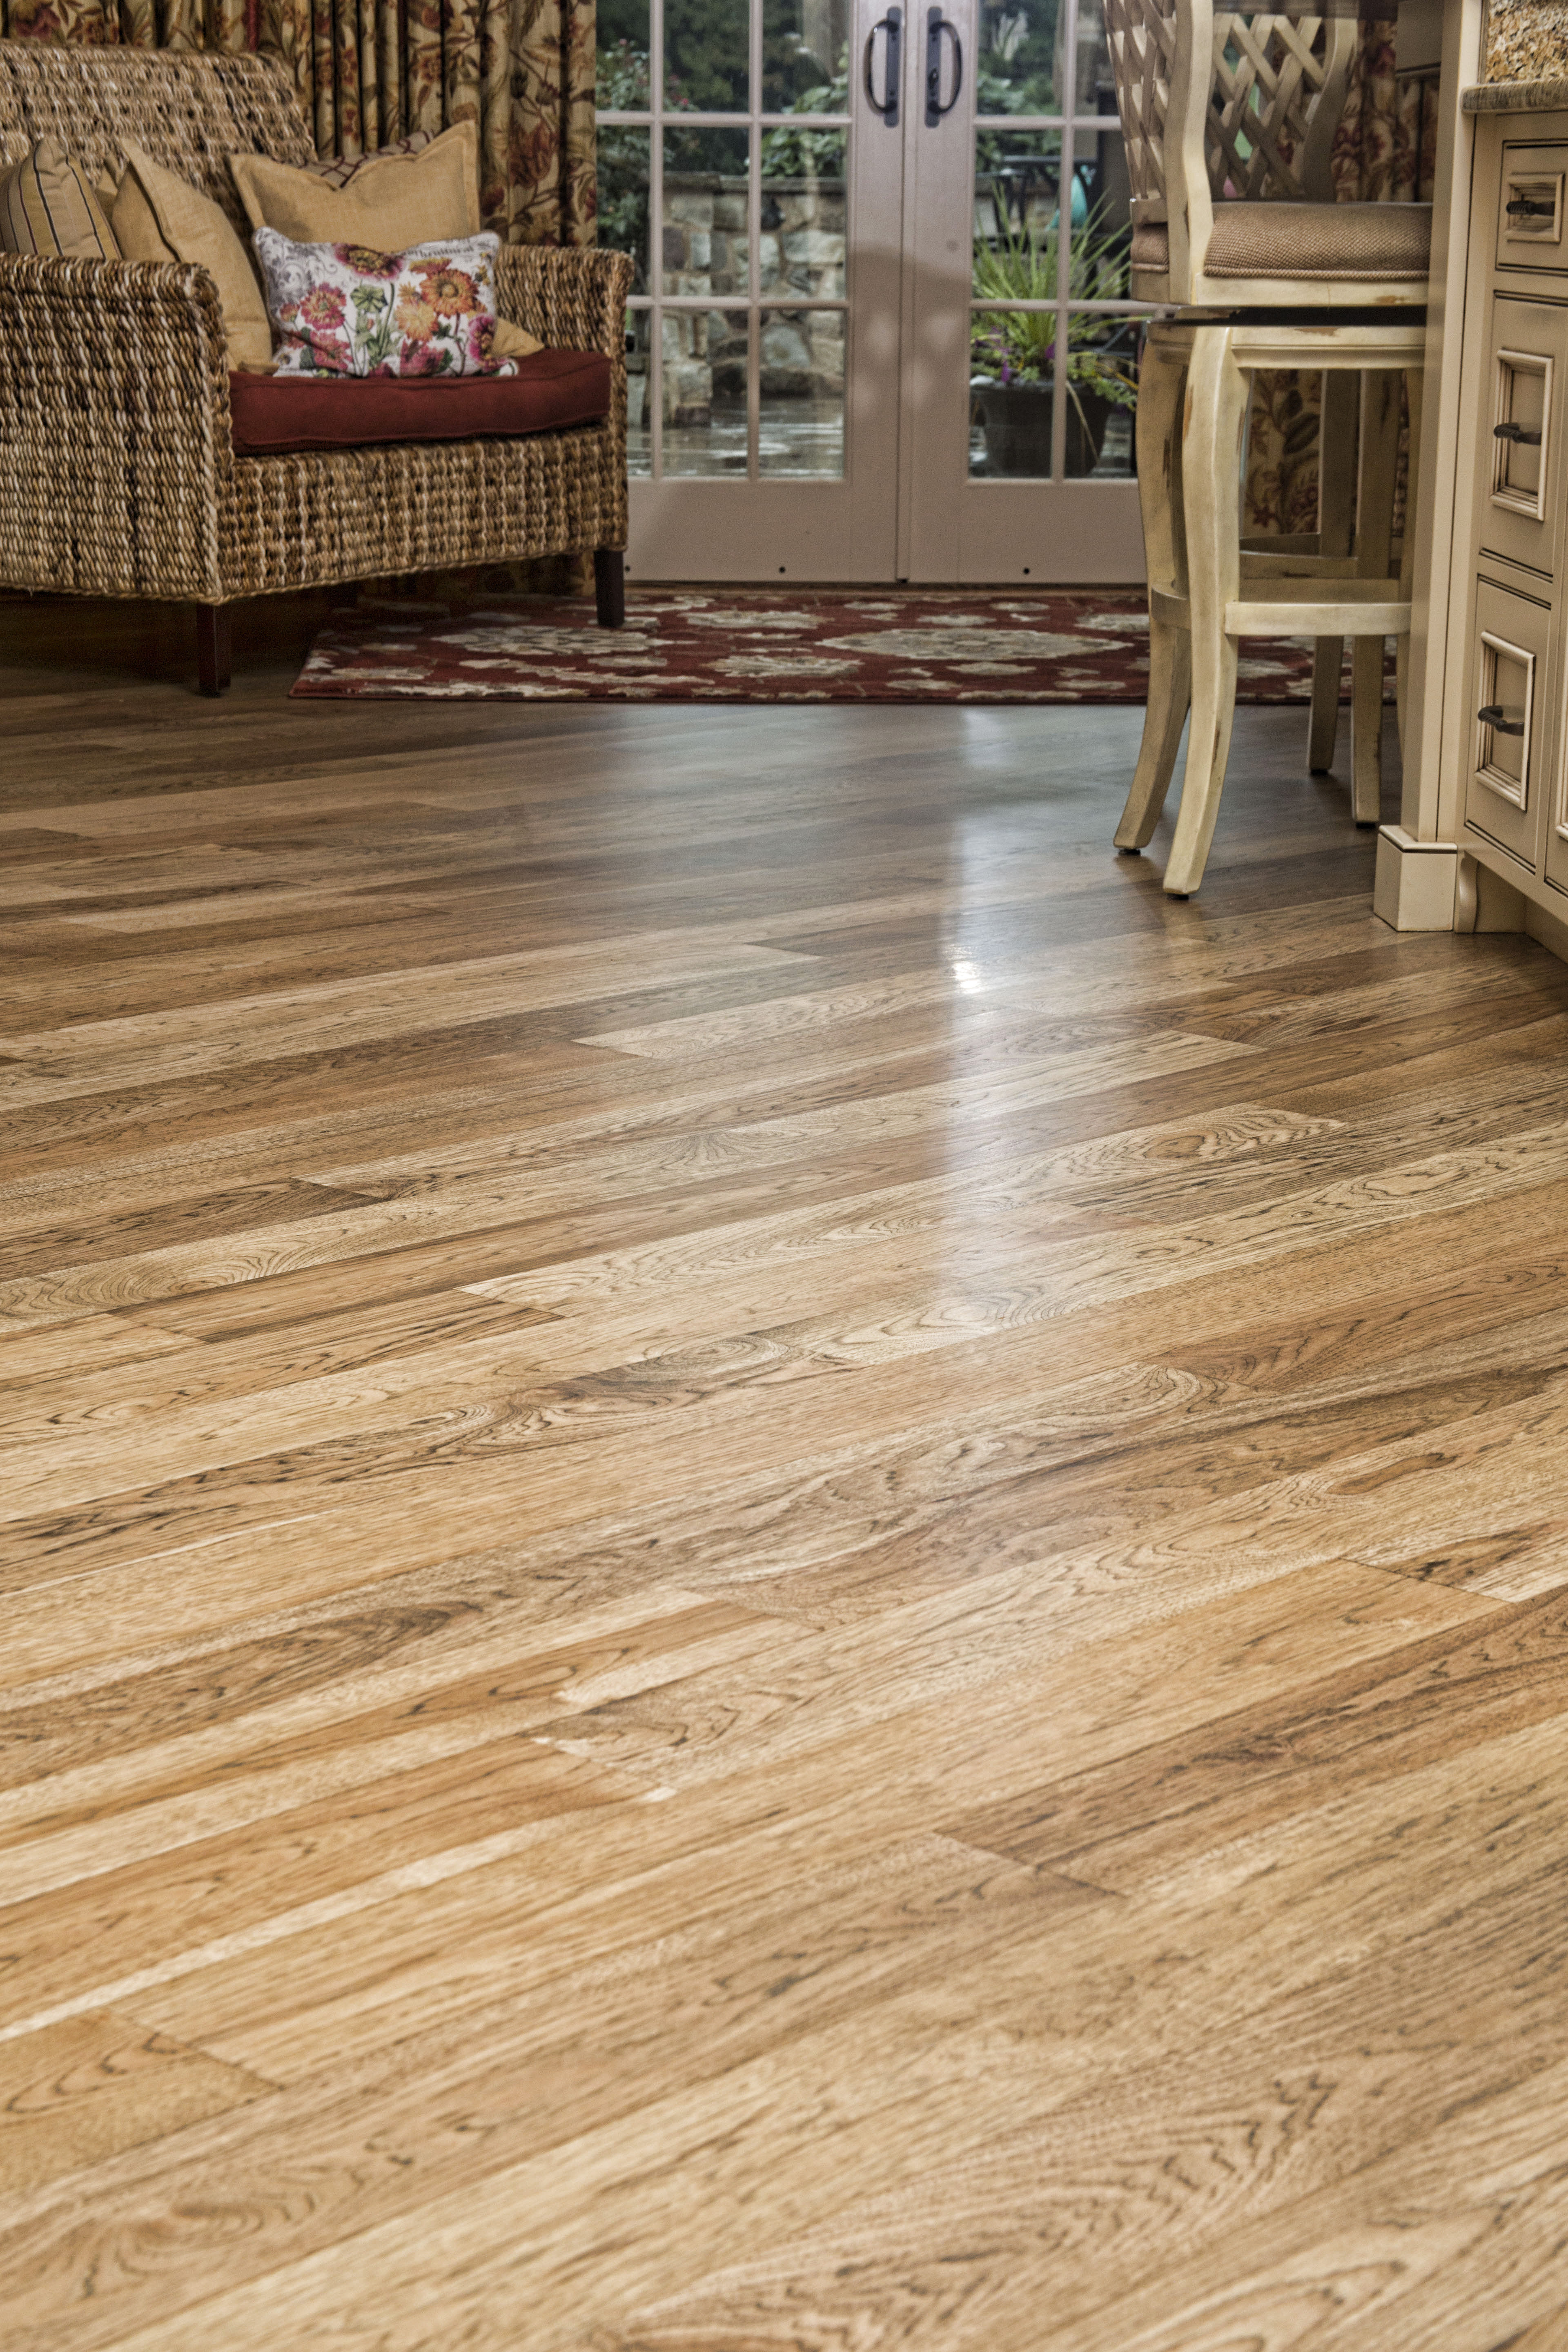 Hardwood flooring in hagerstown md transform your home today add classic and timeless beauty to your home with the addition of new hardwood flooring at our local store and showroom we offer a wide range of wood dailygadgetfo Images